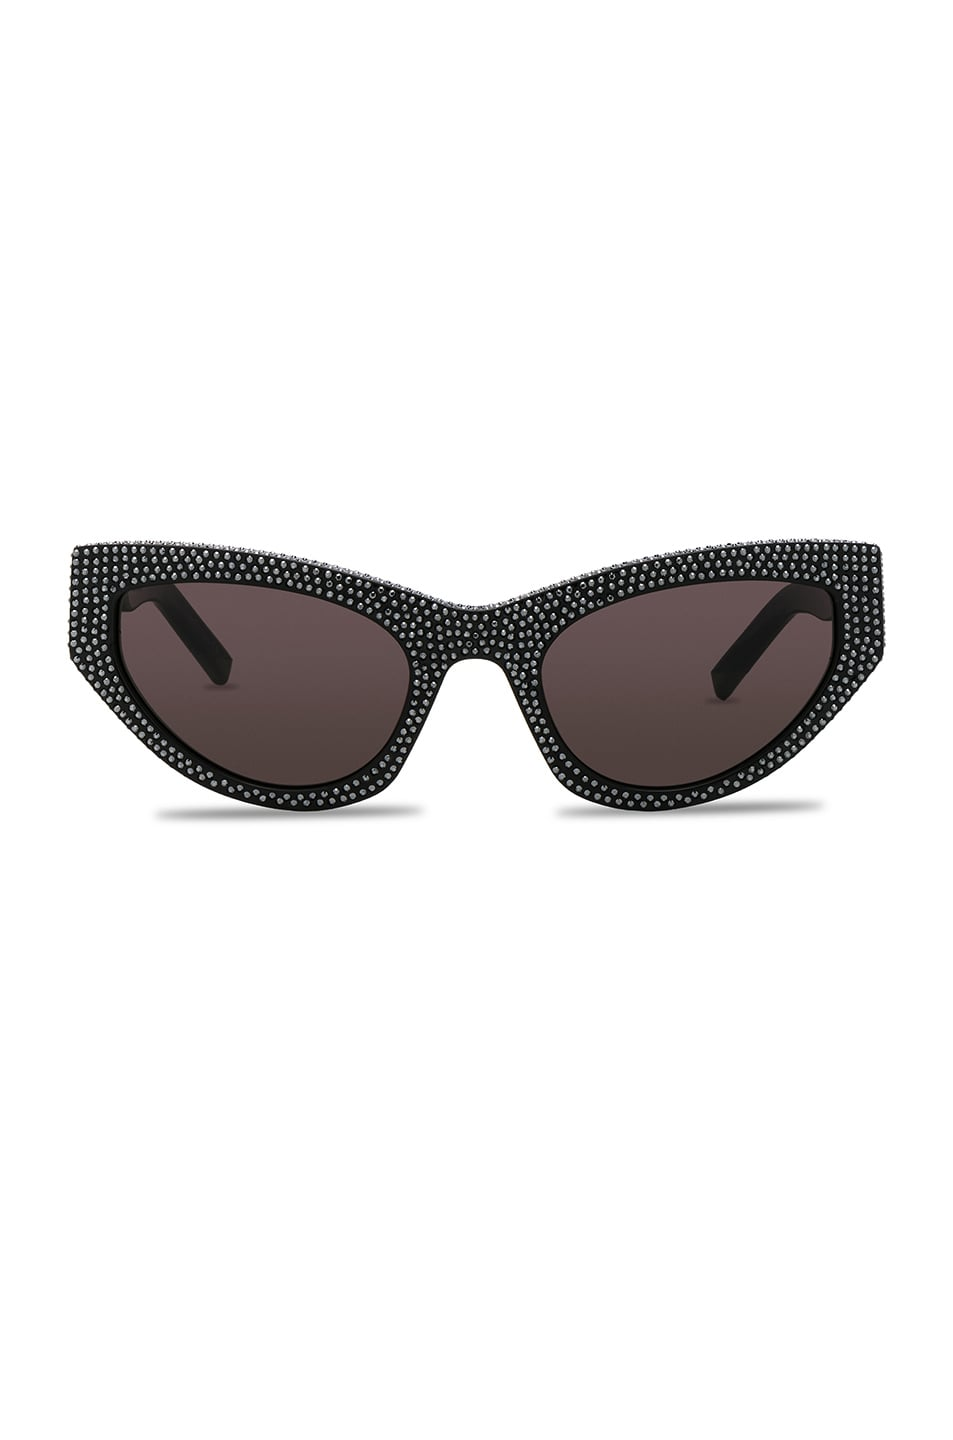 Womens SL215 Grace Sunglasses Saint Laurent Buy Cheap Latest Collections Cheap Sale Wide Range Of Cheap Price Wholesale Price Discount Free Shipping OhZf92